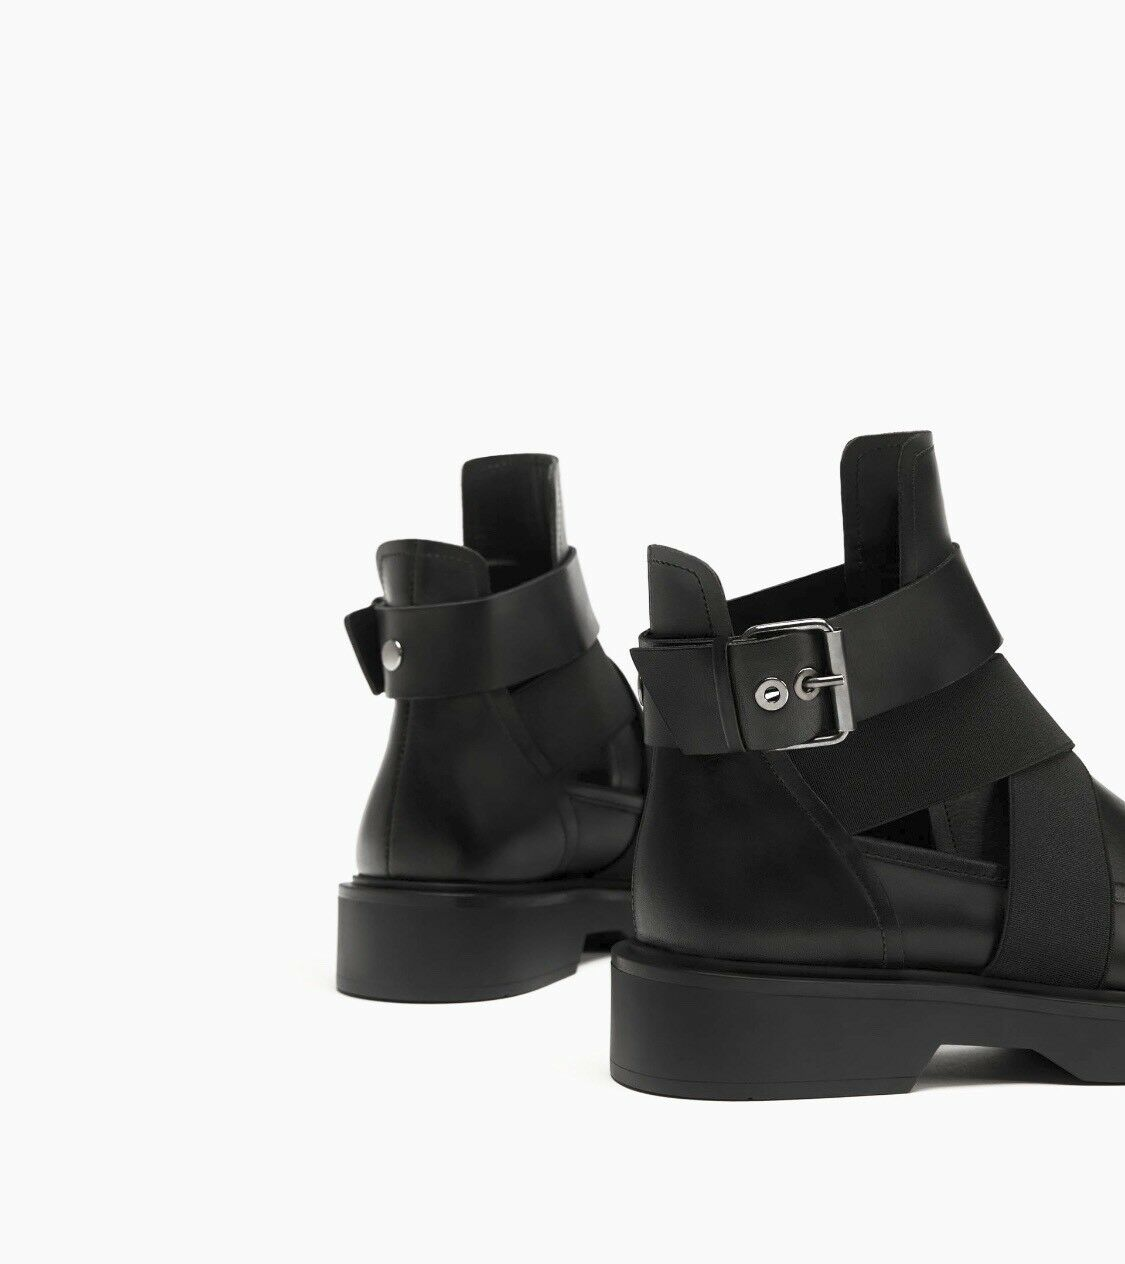 Zara Black Leather Ankle Boots With With With Opening Size EU 40 UK 7 US 9.5 Bnwt e29bfe